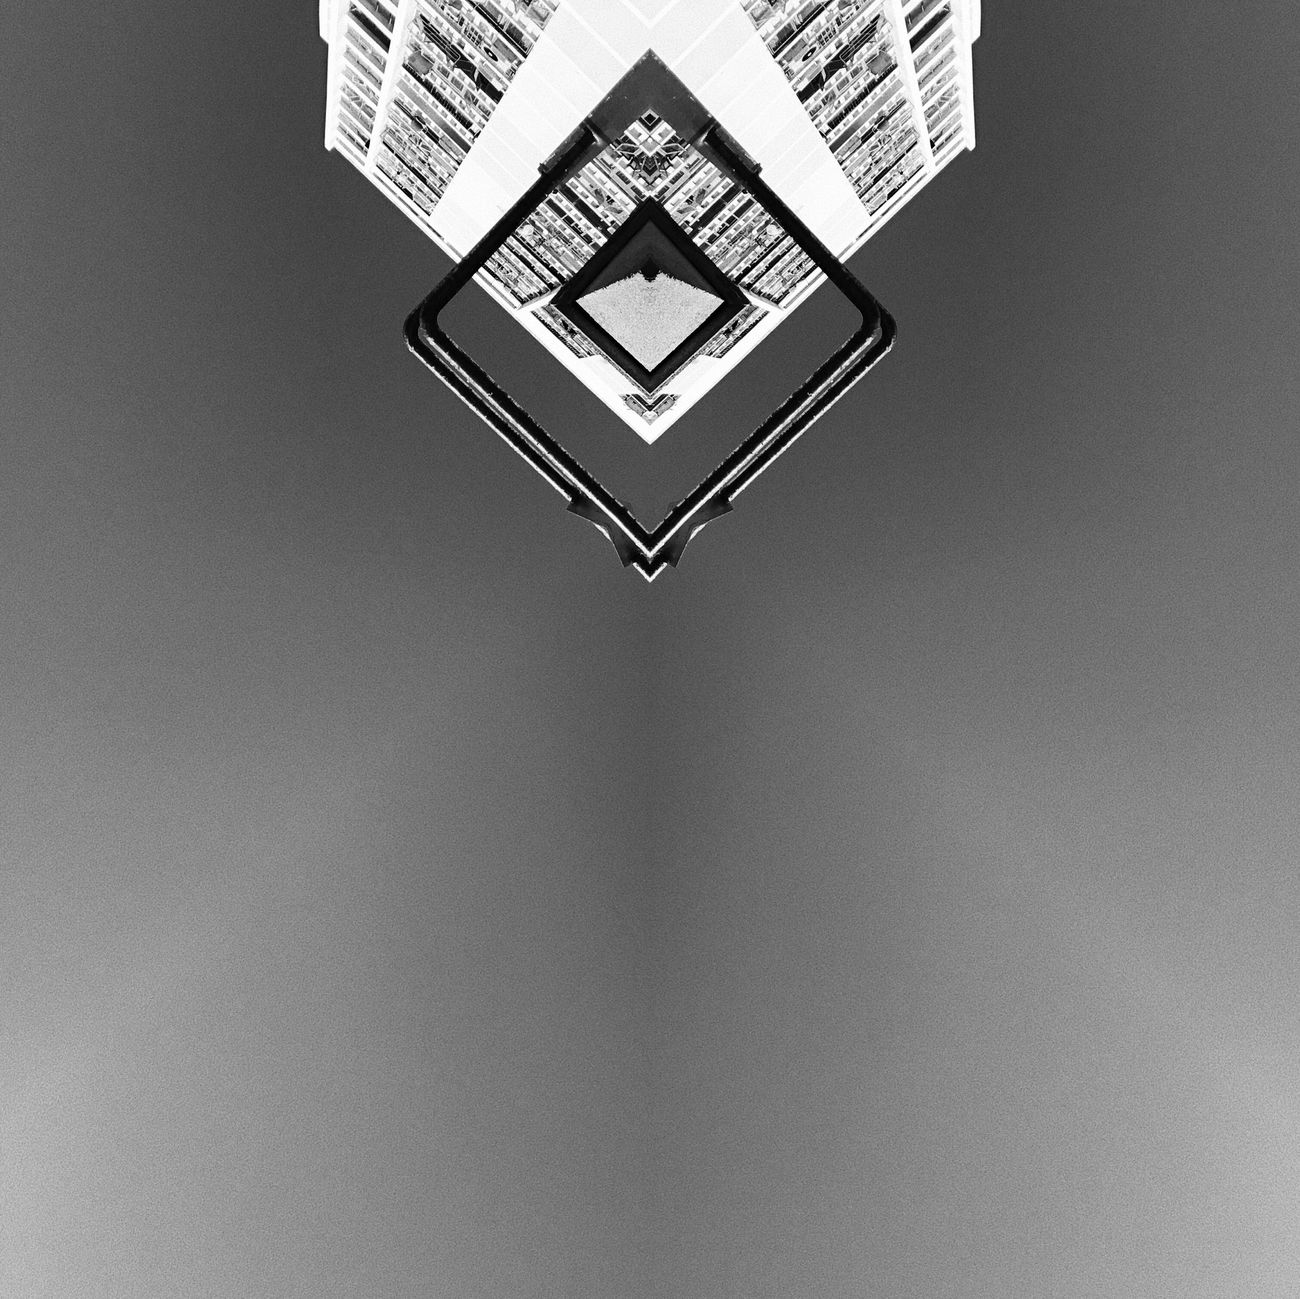 Fox net Doubleexposure Double Exposure Symmetry Symmetryporn Symmetrical Art Artistic Abstract Abstract Art Rearchitseries Abstractarchitecture EyeEm Best Shots - Black + White Blackandwhite Photography Black And White Blackandwhite Black & White Monochromatic Monochrome